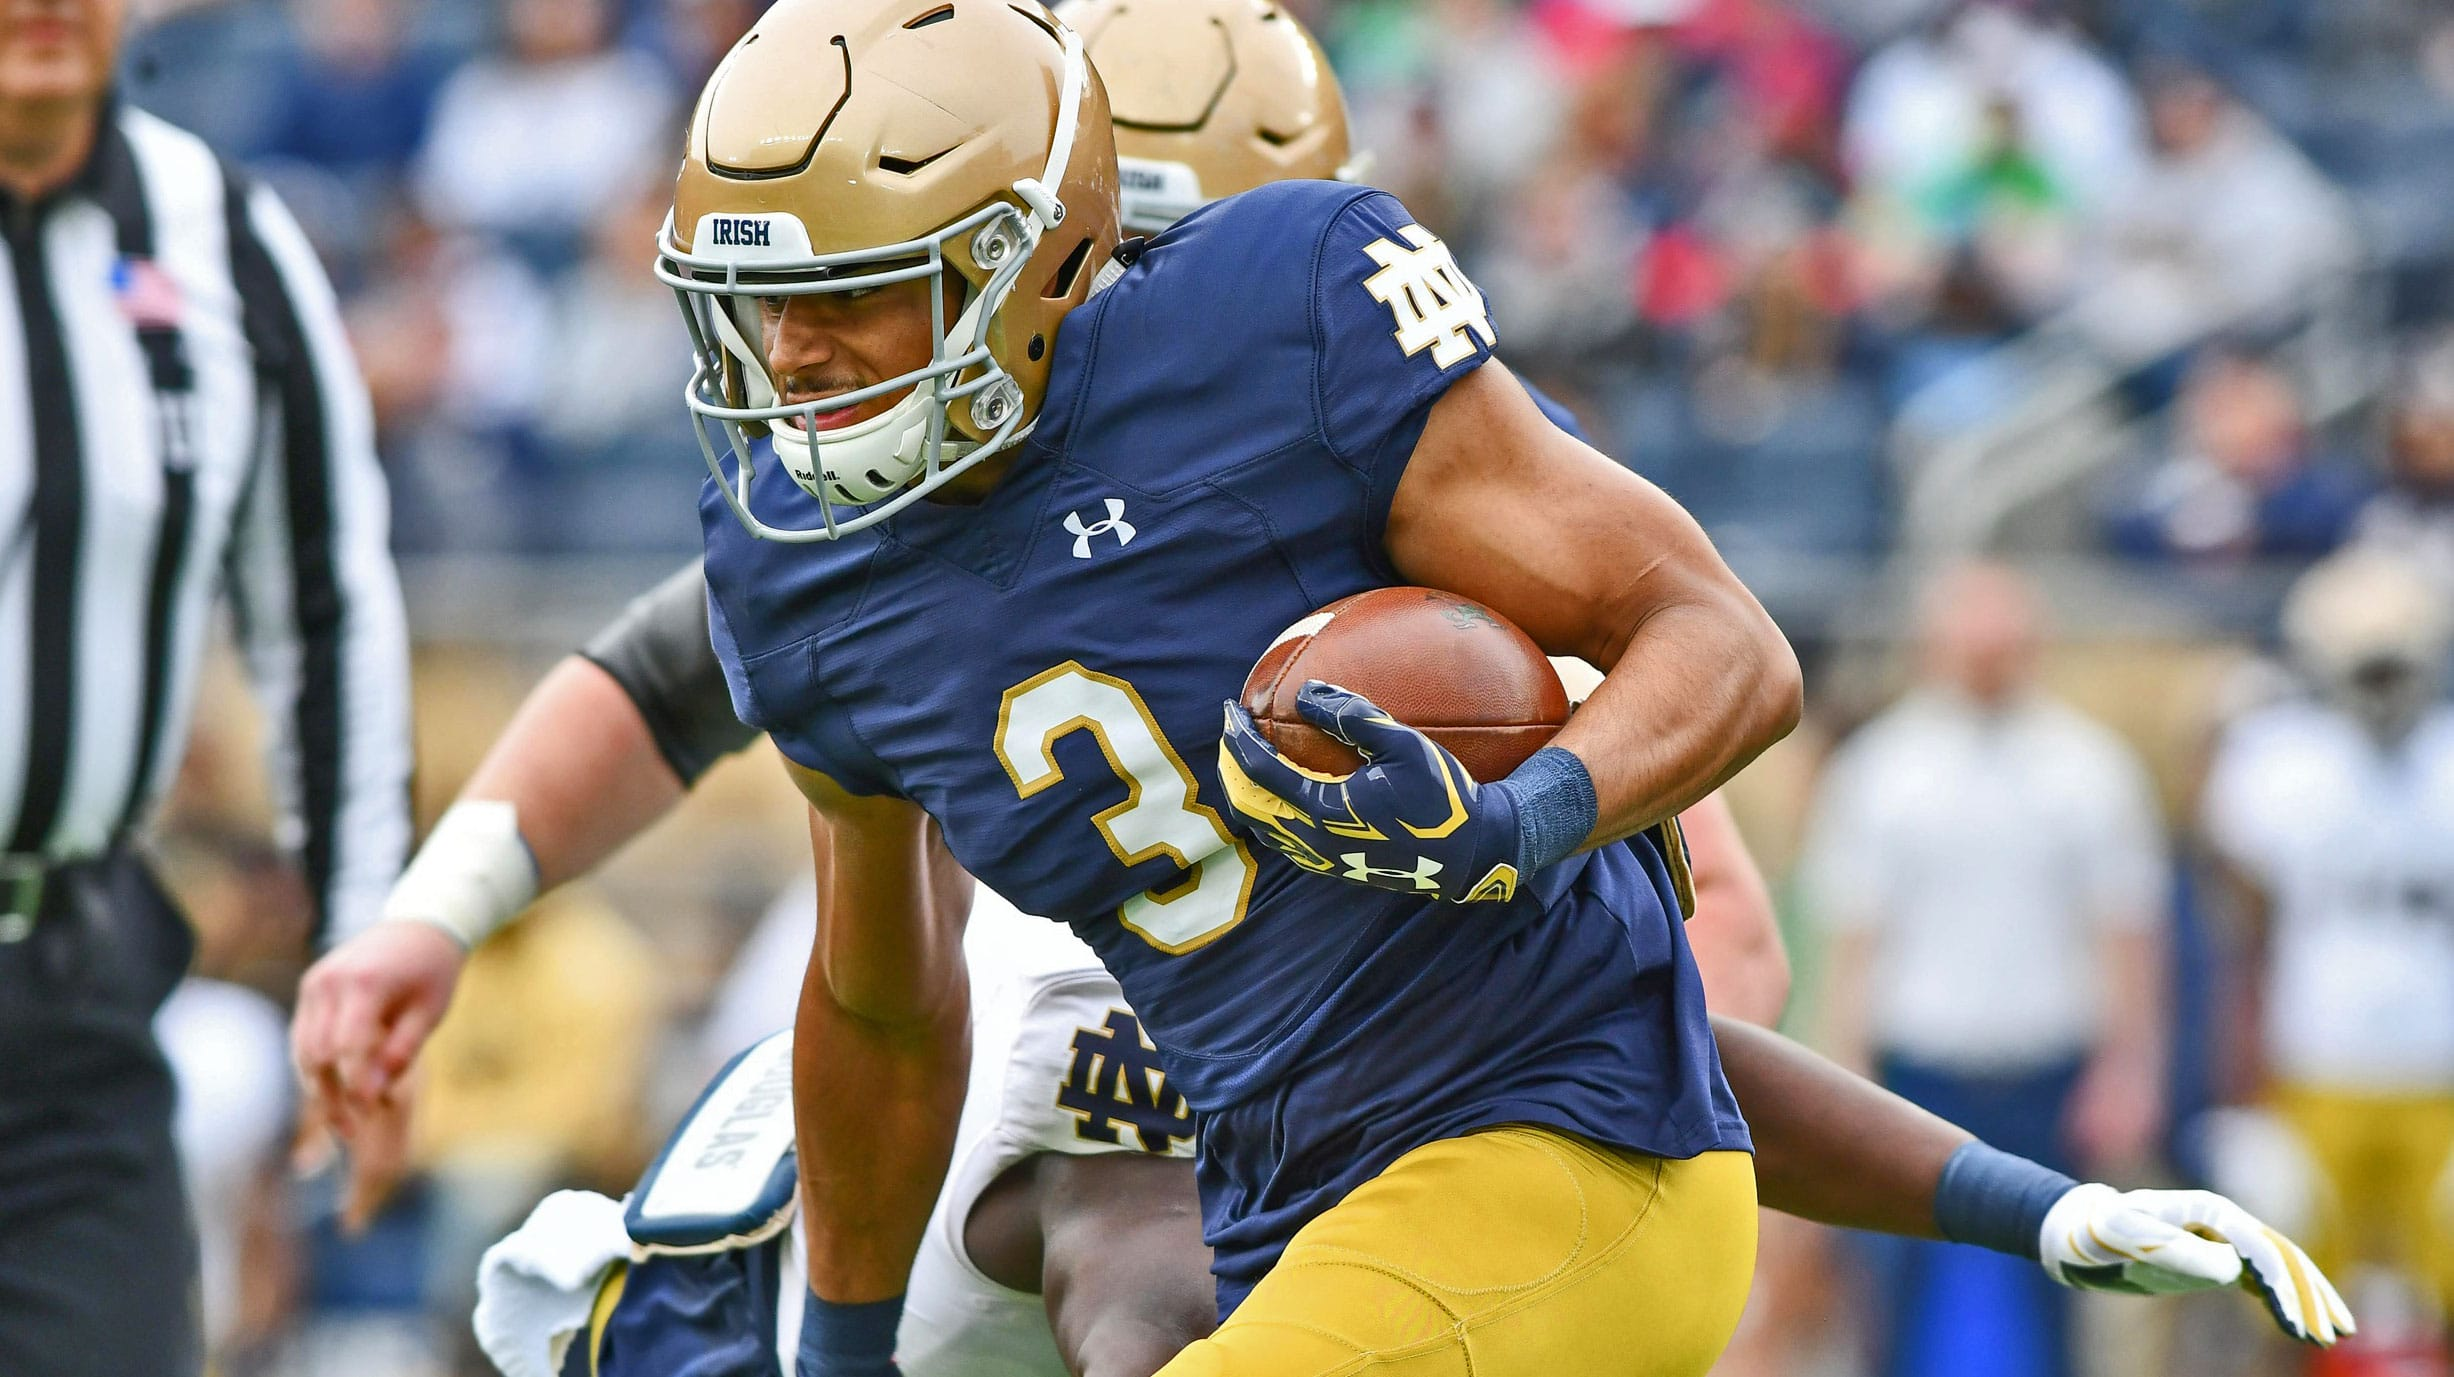 Notre Dame Football Schedule 2019 >> Will Avery Davis, Jafar Armstrong Give Notre Dame Options? // UHND.com